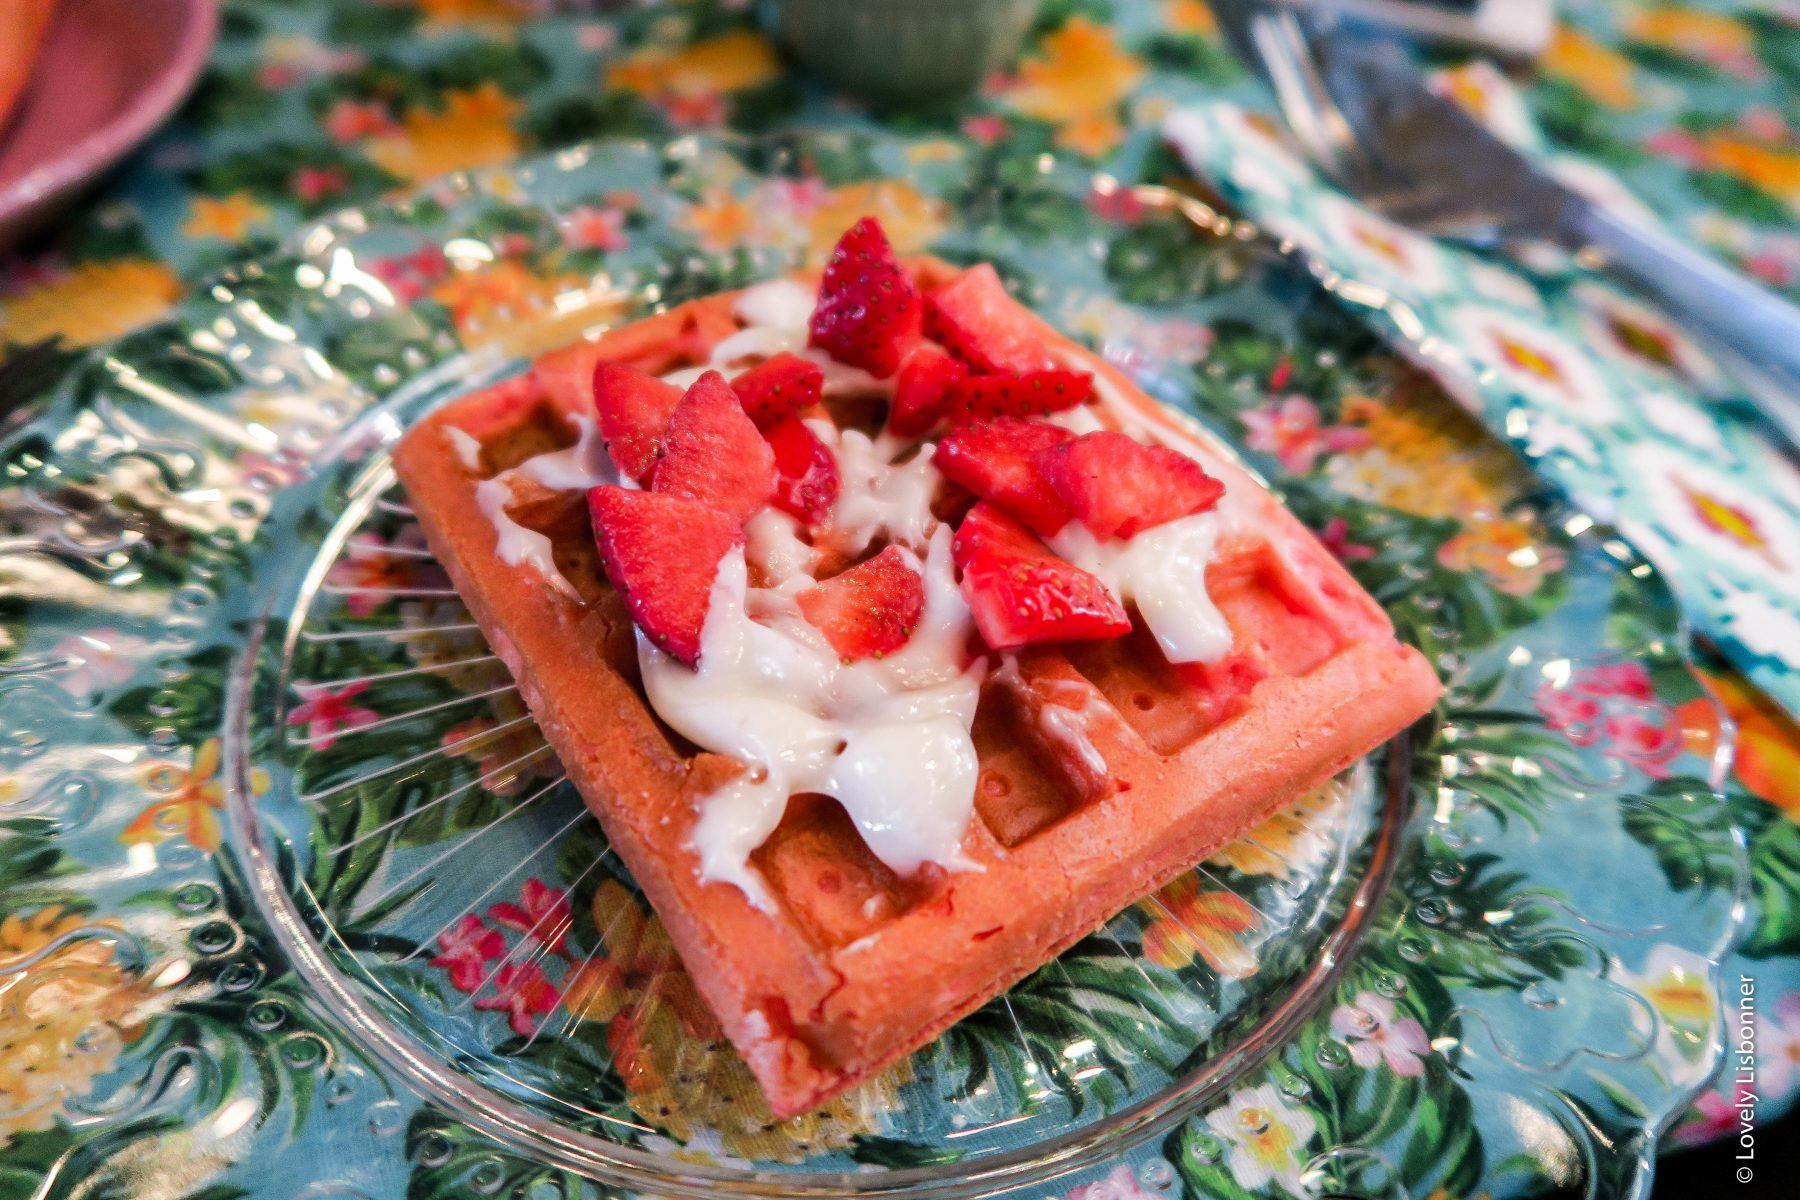 Brunch do Mundo de 25-05-2019. 3ª Temporada - América do Norte e Central - waffle de red velvet estados unidos da américa